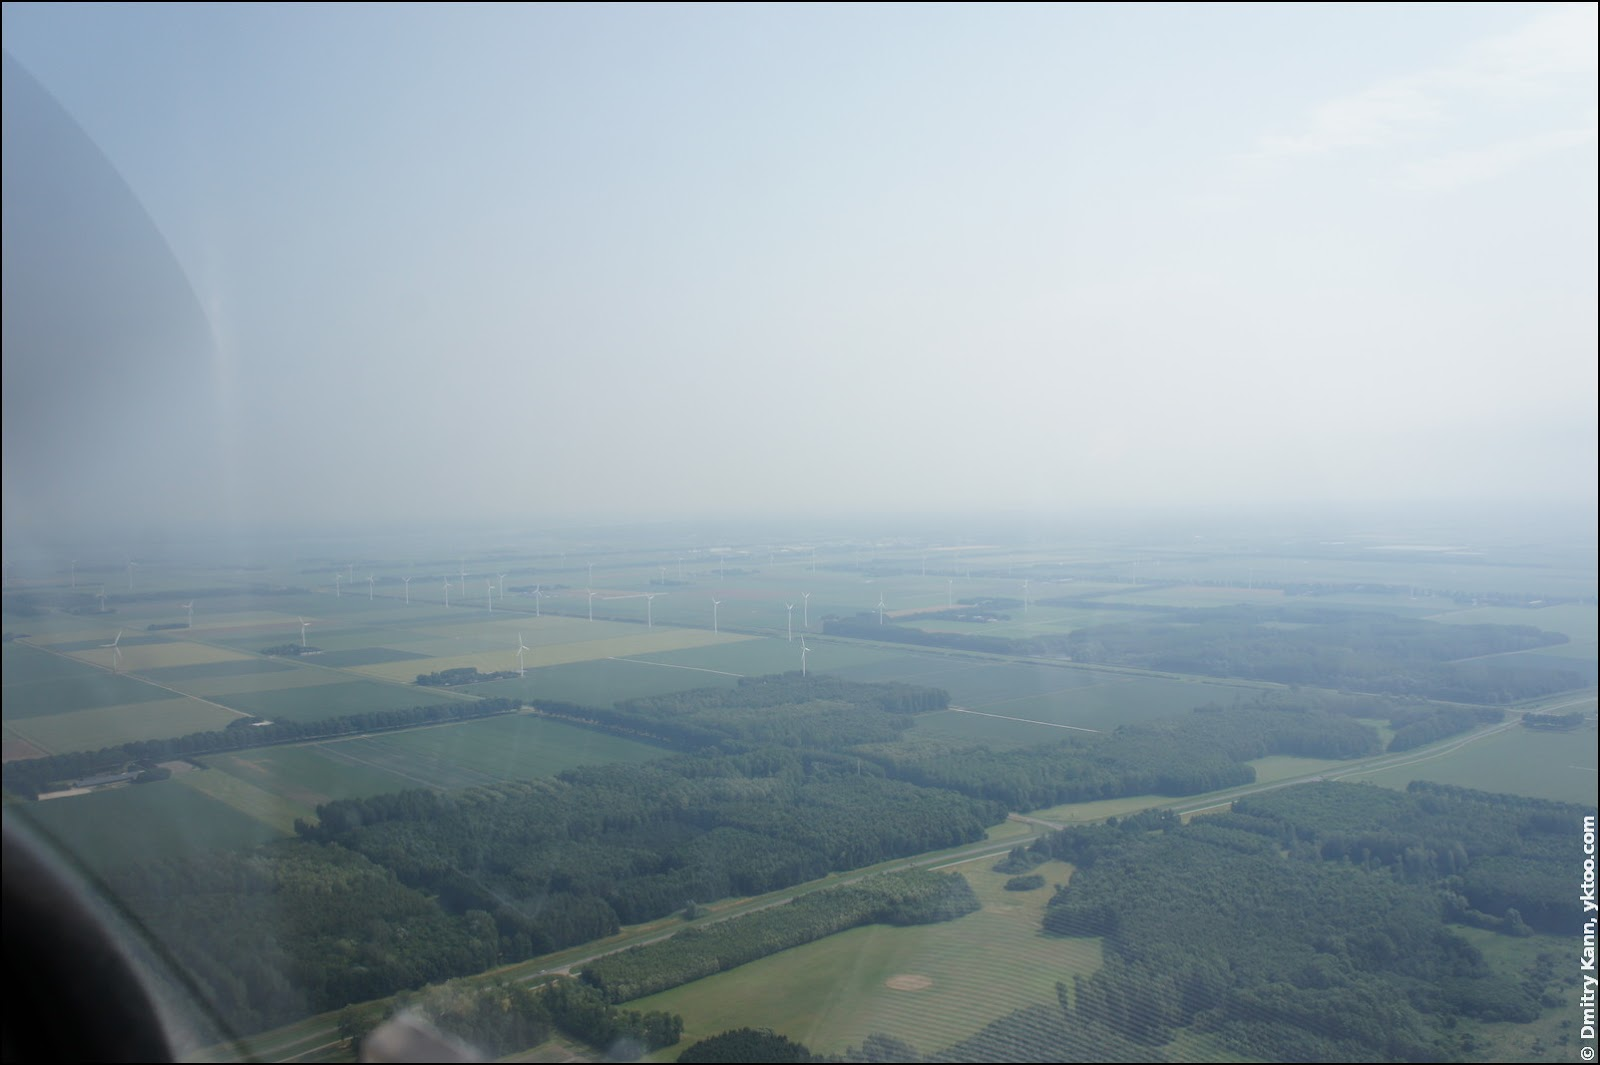 Holland from above.